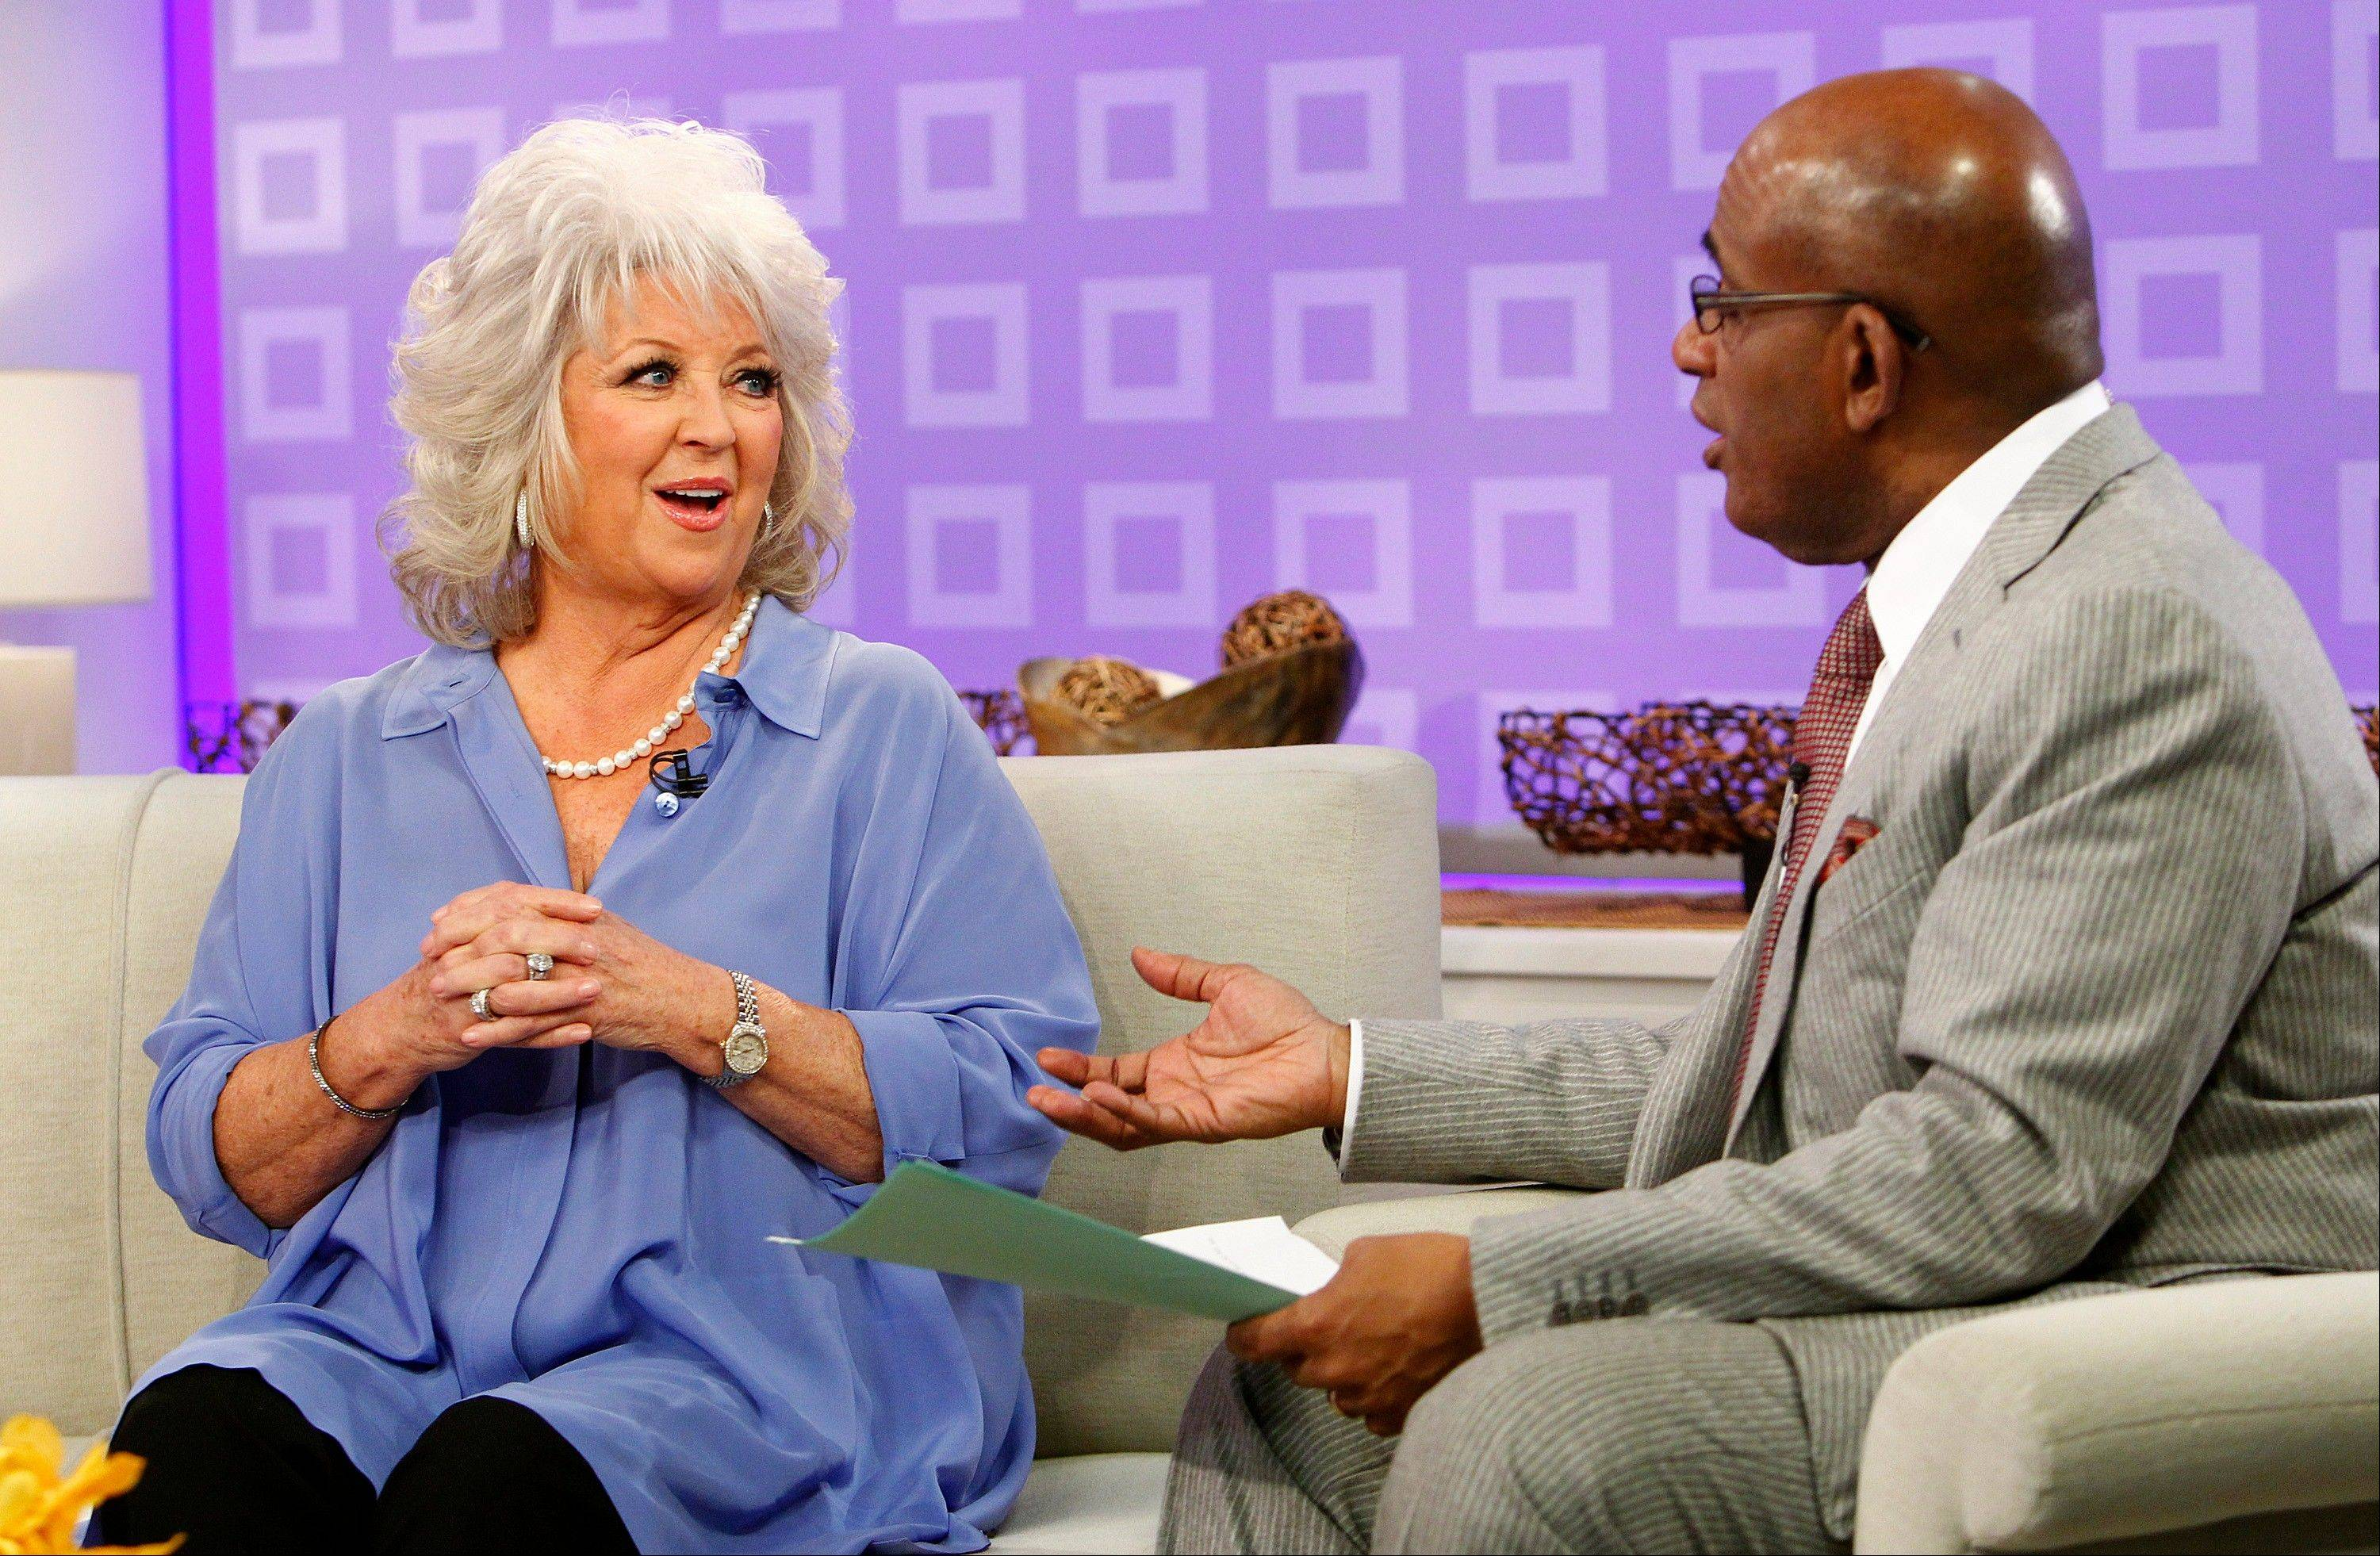 Celebrity chef and TV personality Paula Deen, seen here with co-host Al Roker last year, was a no-show on Friday�s �Today� show where she was scheduled to appear to answer questions about past use of racial slurs.